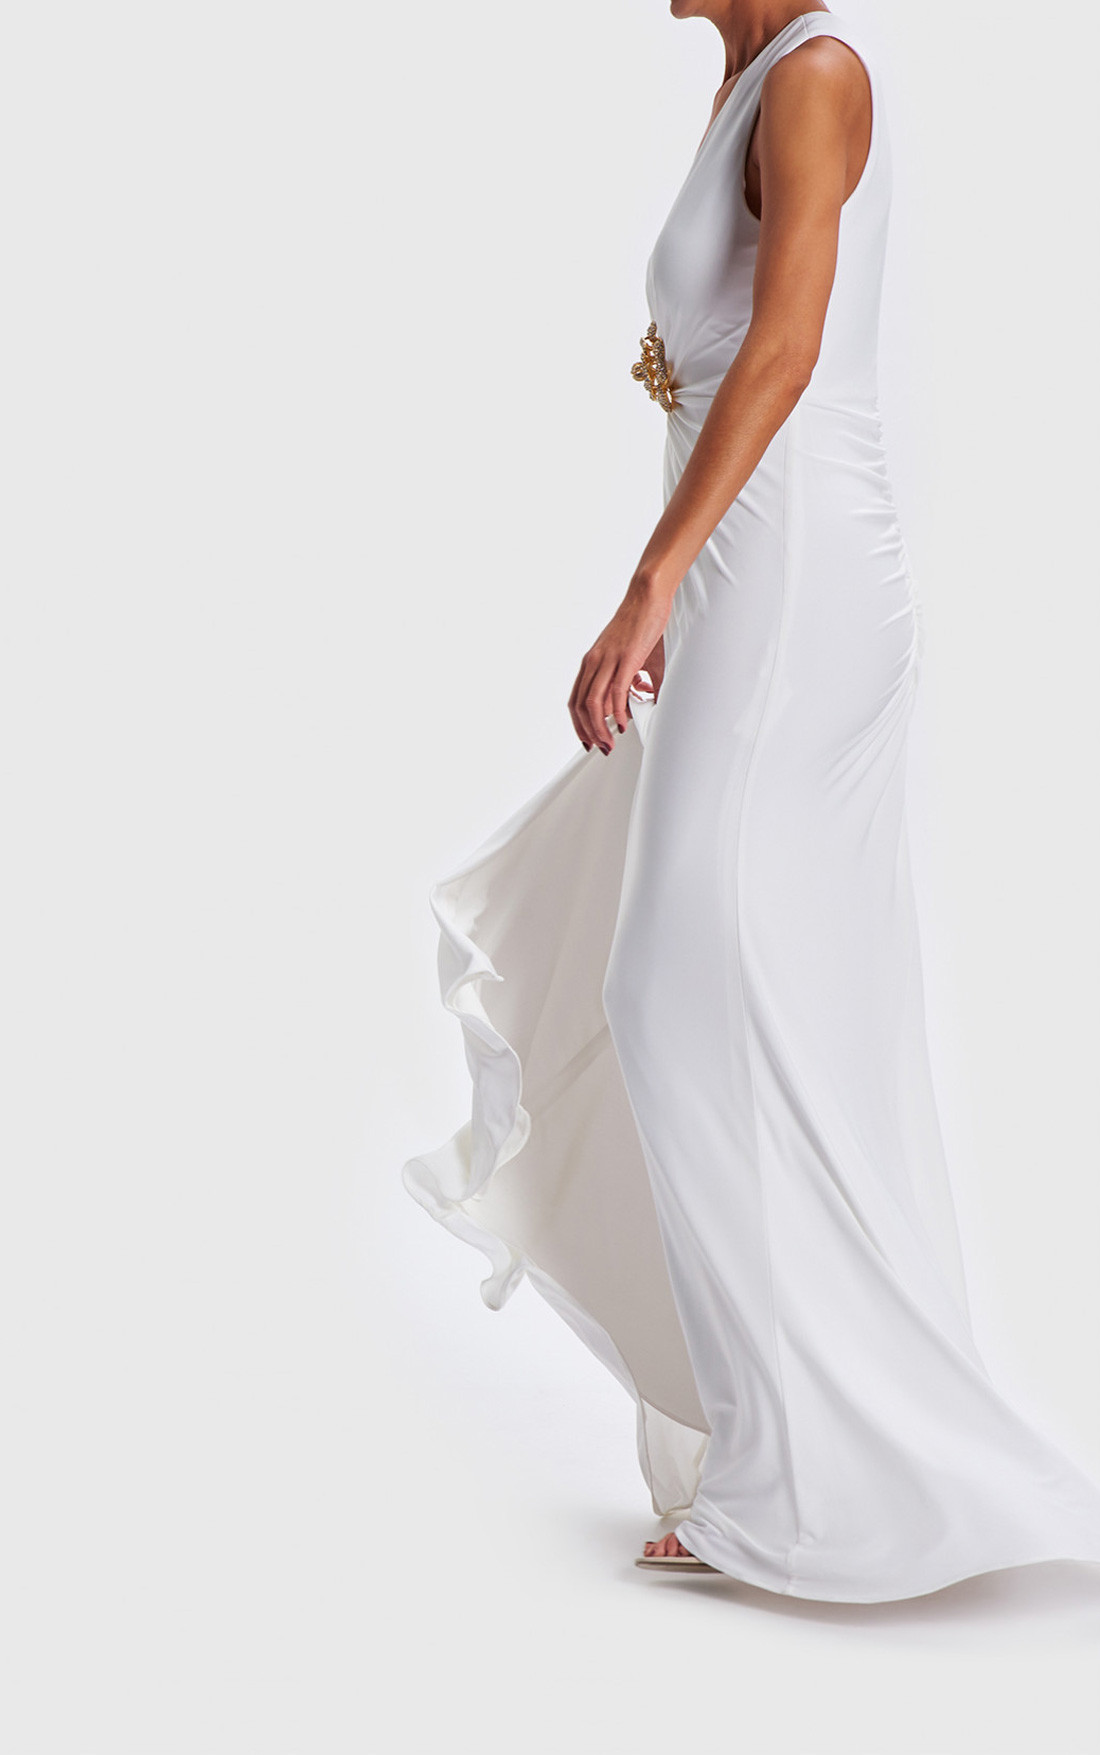 Forever Unique - Jeannie Ivory Gown With Diamante Brooch (AB0921)